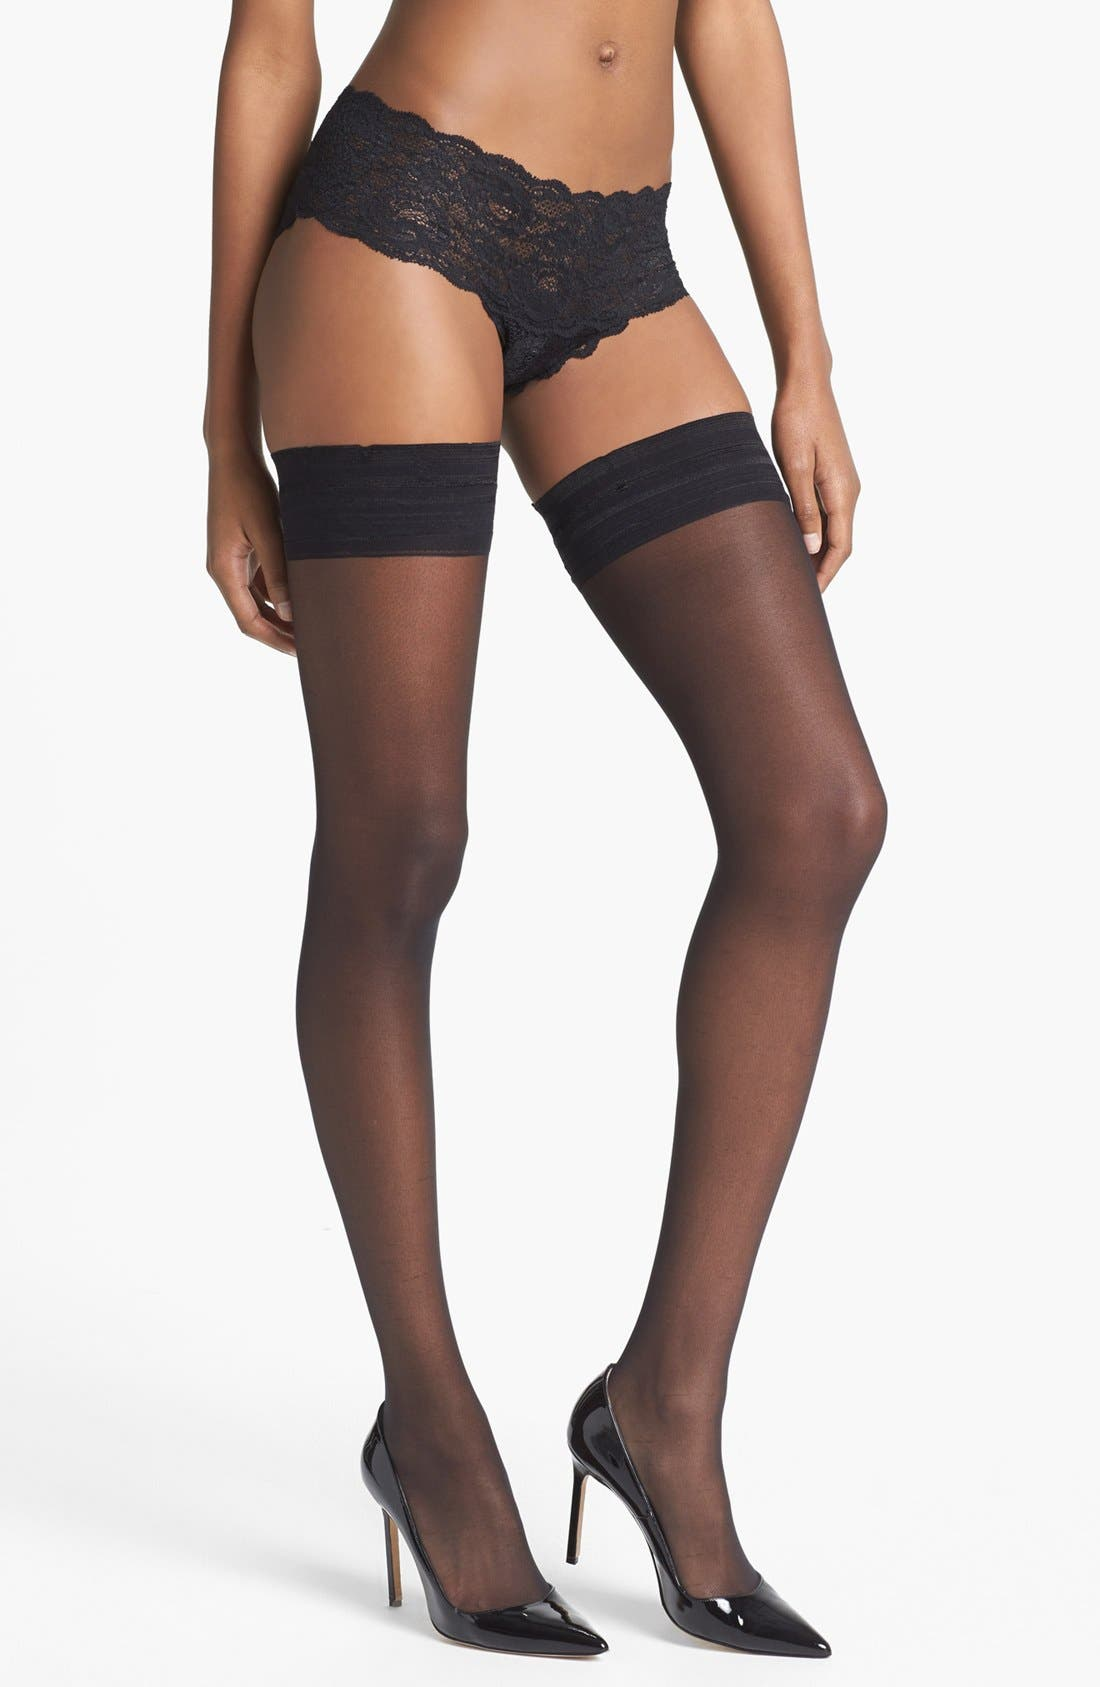 Alternate Image 1 Selected - DKNY Sheer Thigh High Stockings